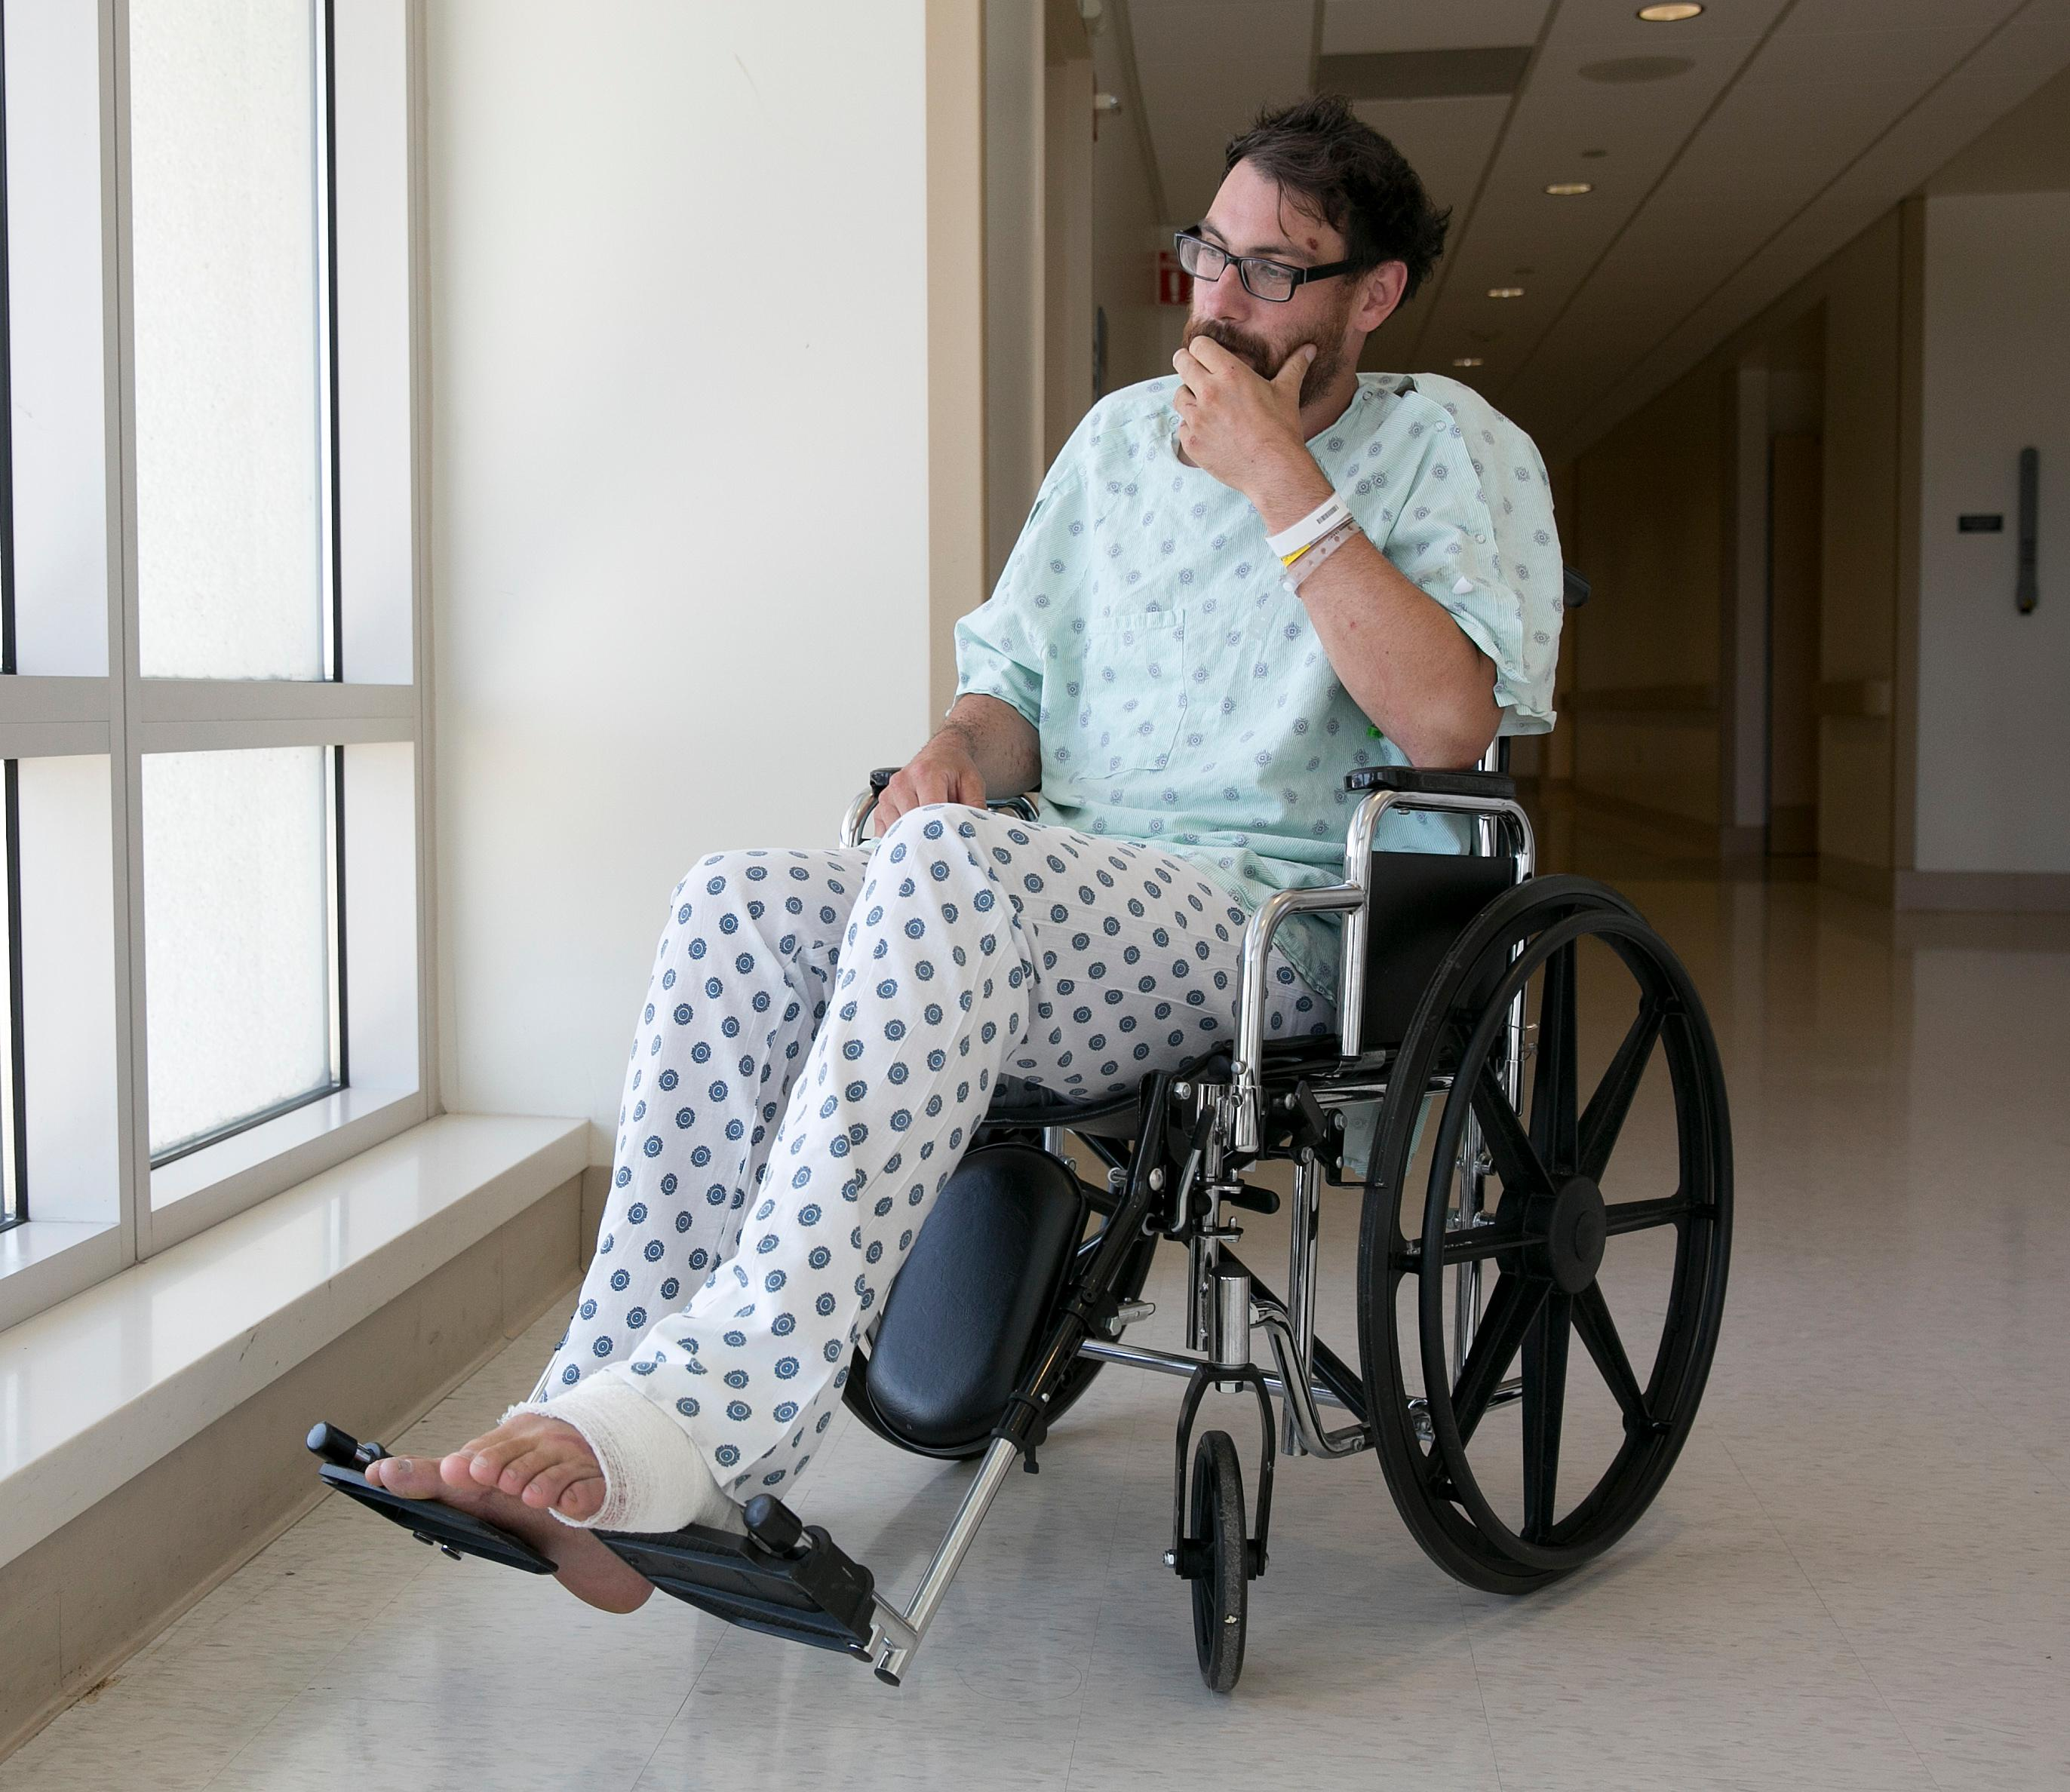 Mathias Steinhuber, of Innsbruck, Austria, who survived being struck by a lighting bolt, pauses while discussing the near-fatal event, Thursday, Aug. 24, 2017, in Sacramento, Calif. (AP Photo/Rich Pedroncelli)